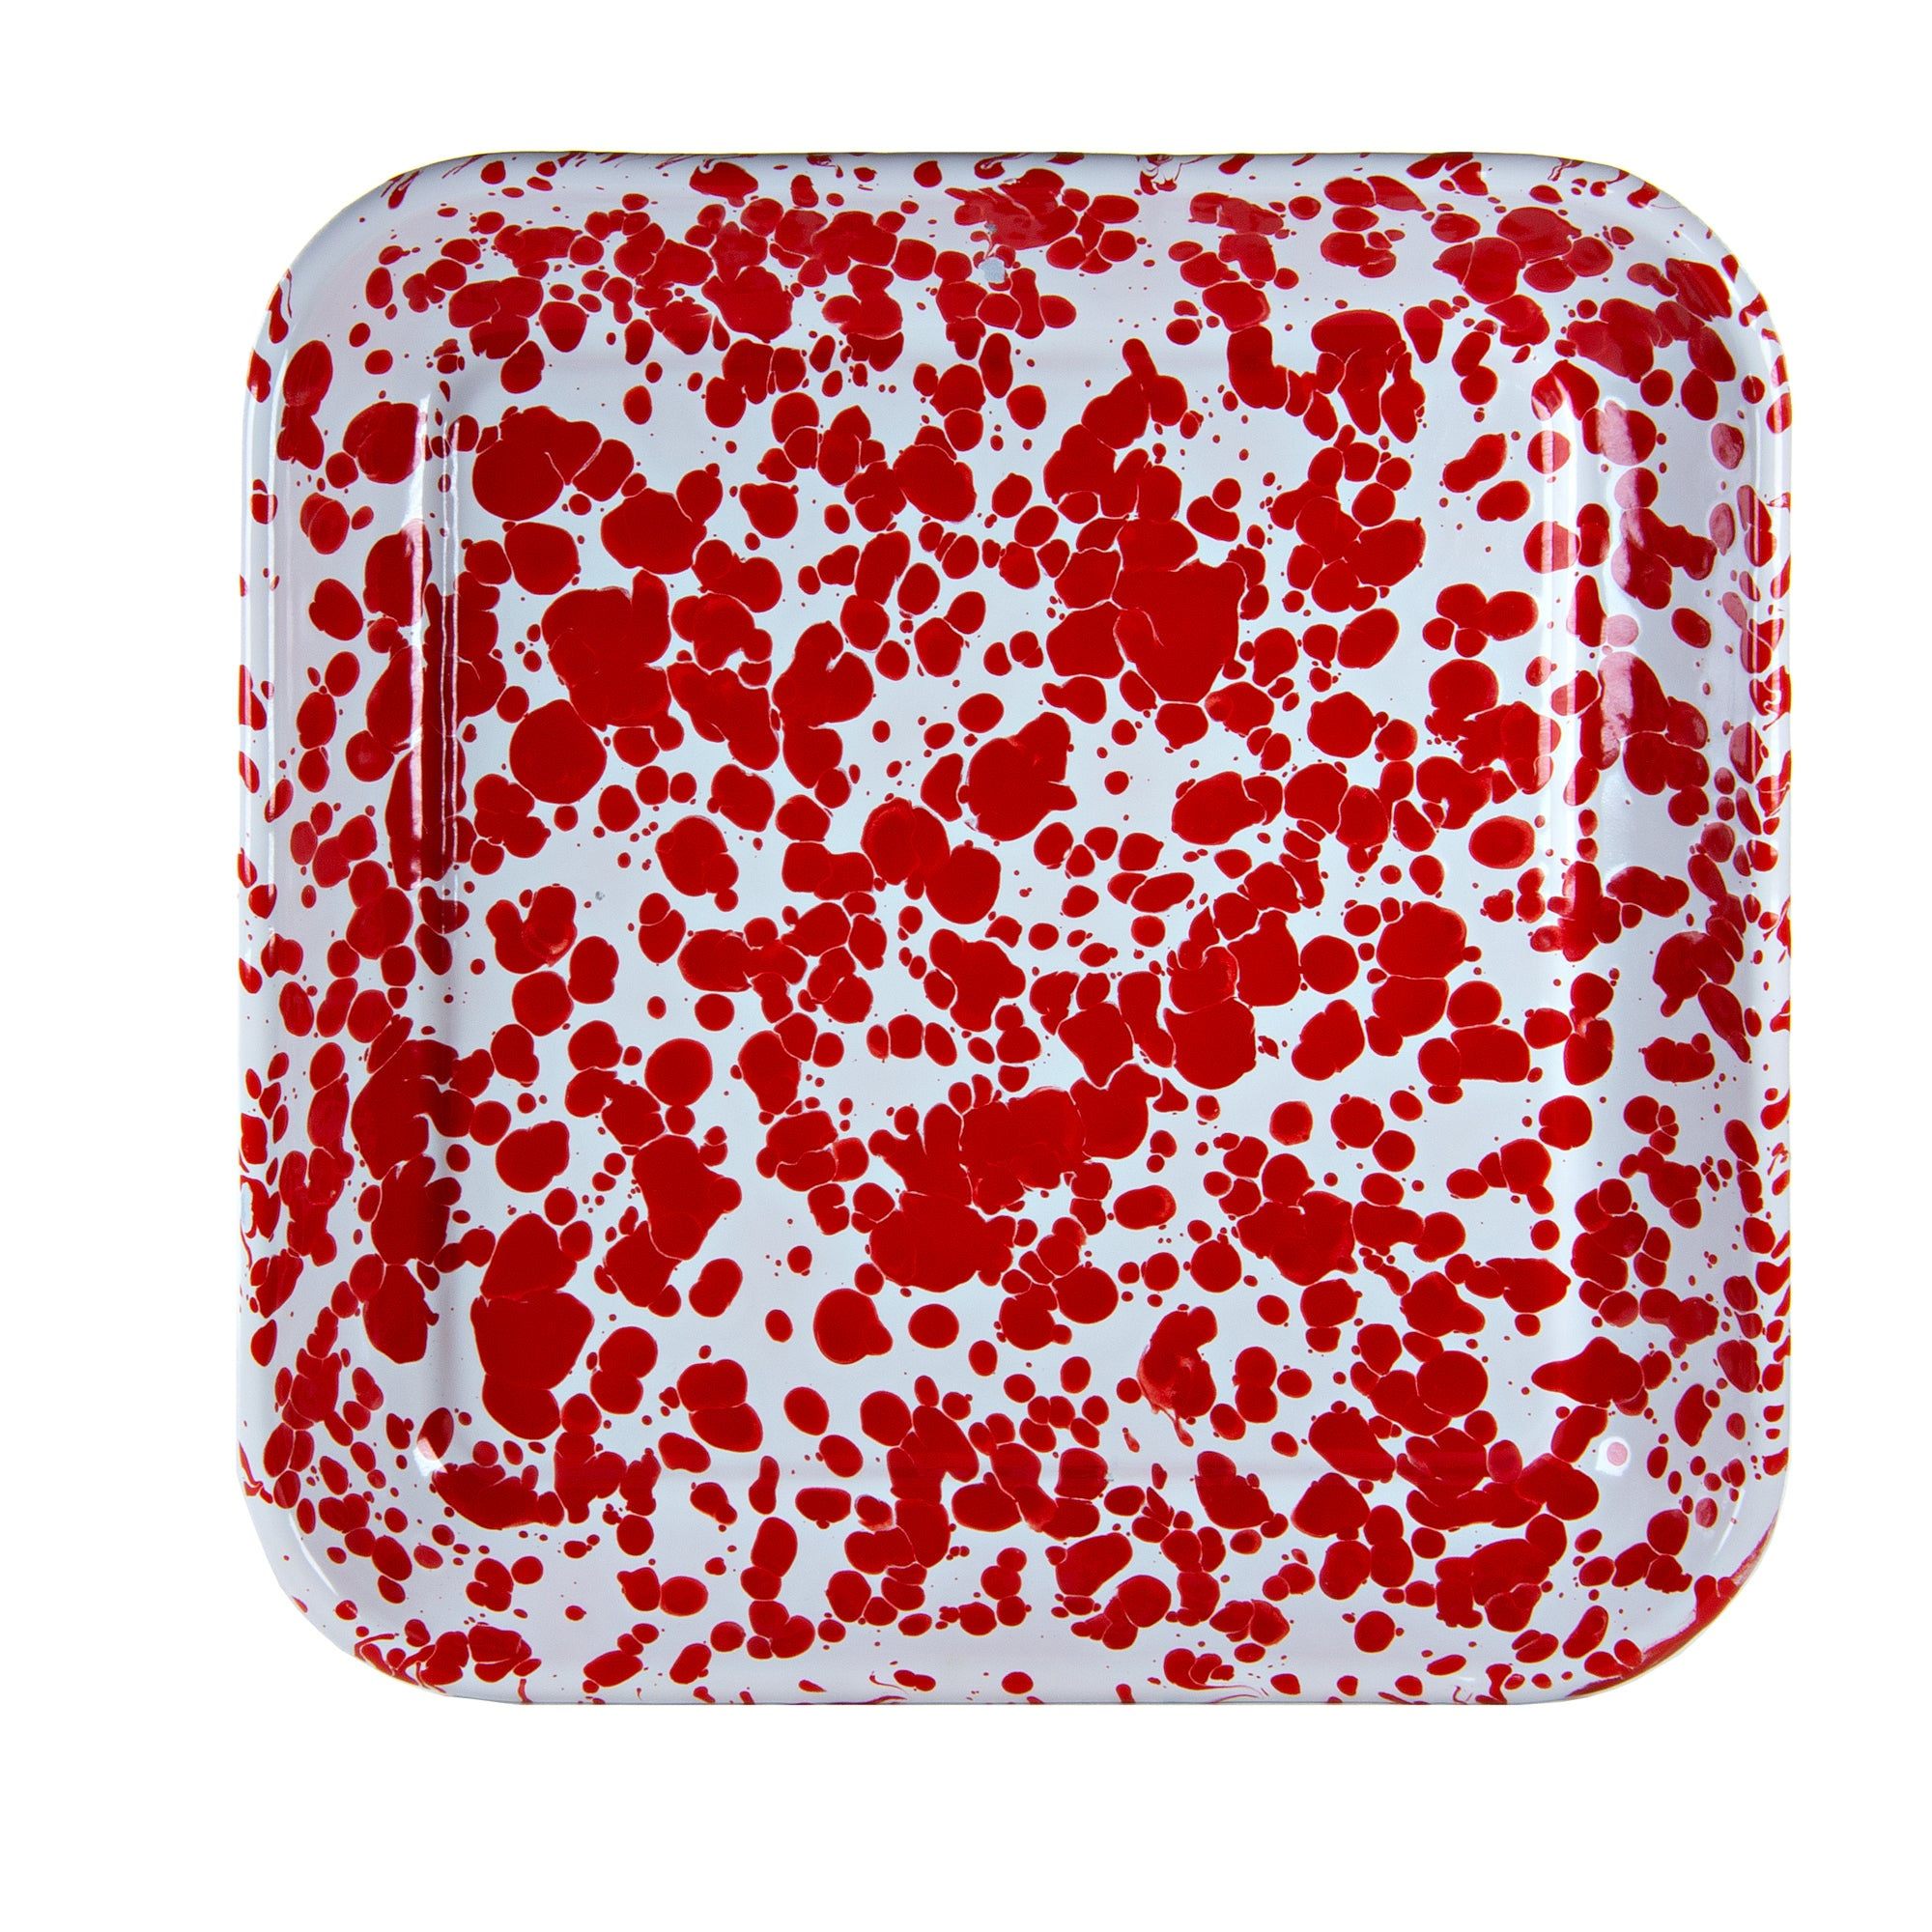 RD09S2 - Set of 2 Red Swirl Square Trays Product 2